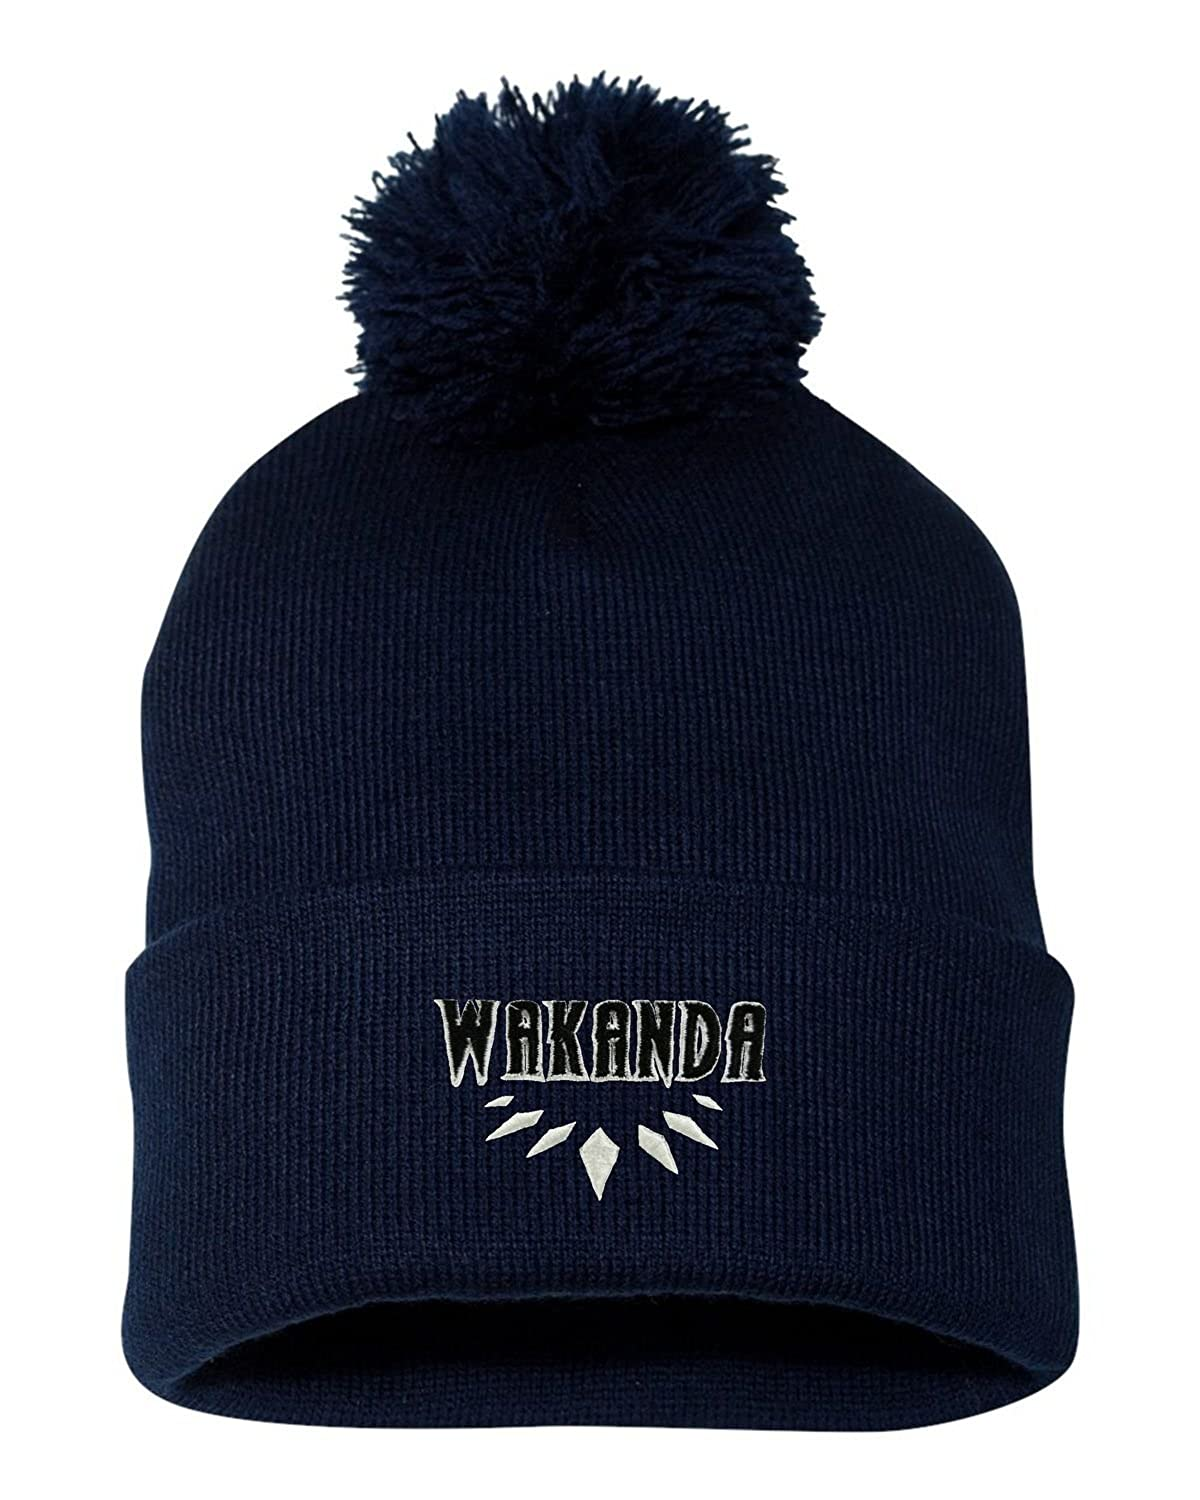 7a19cd28 Amazon.com: Go All Out One Size Black Adult Wakanda Embroidered Knit Beanie  Pom Cap: Clothing